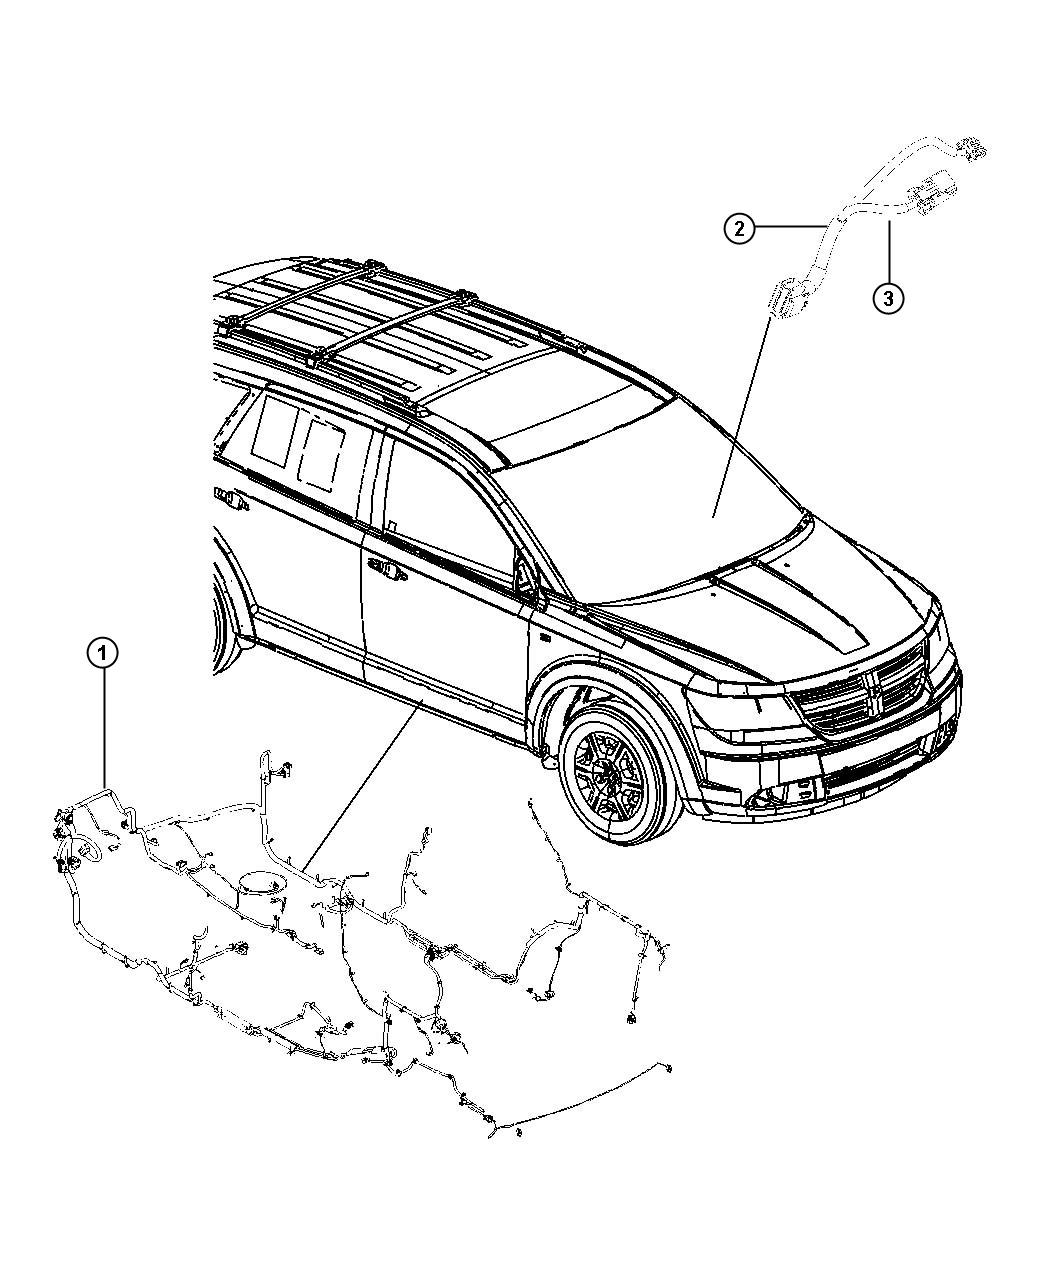 Dodge Journey Wiring. Unified body. Mexico. [export